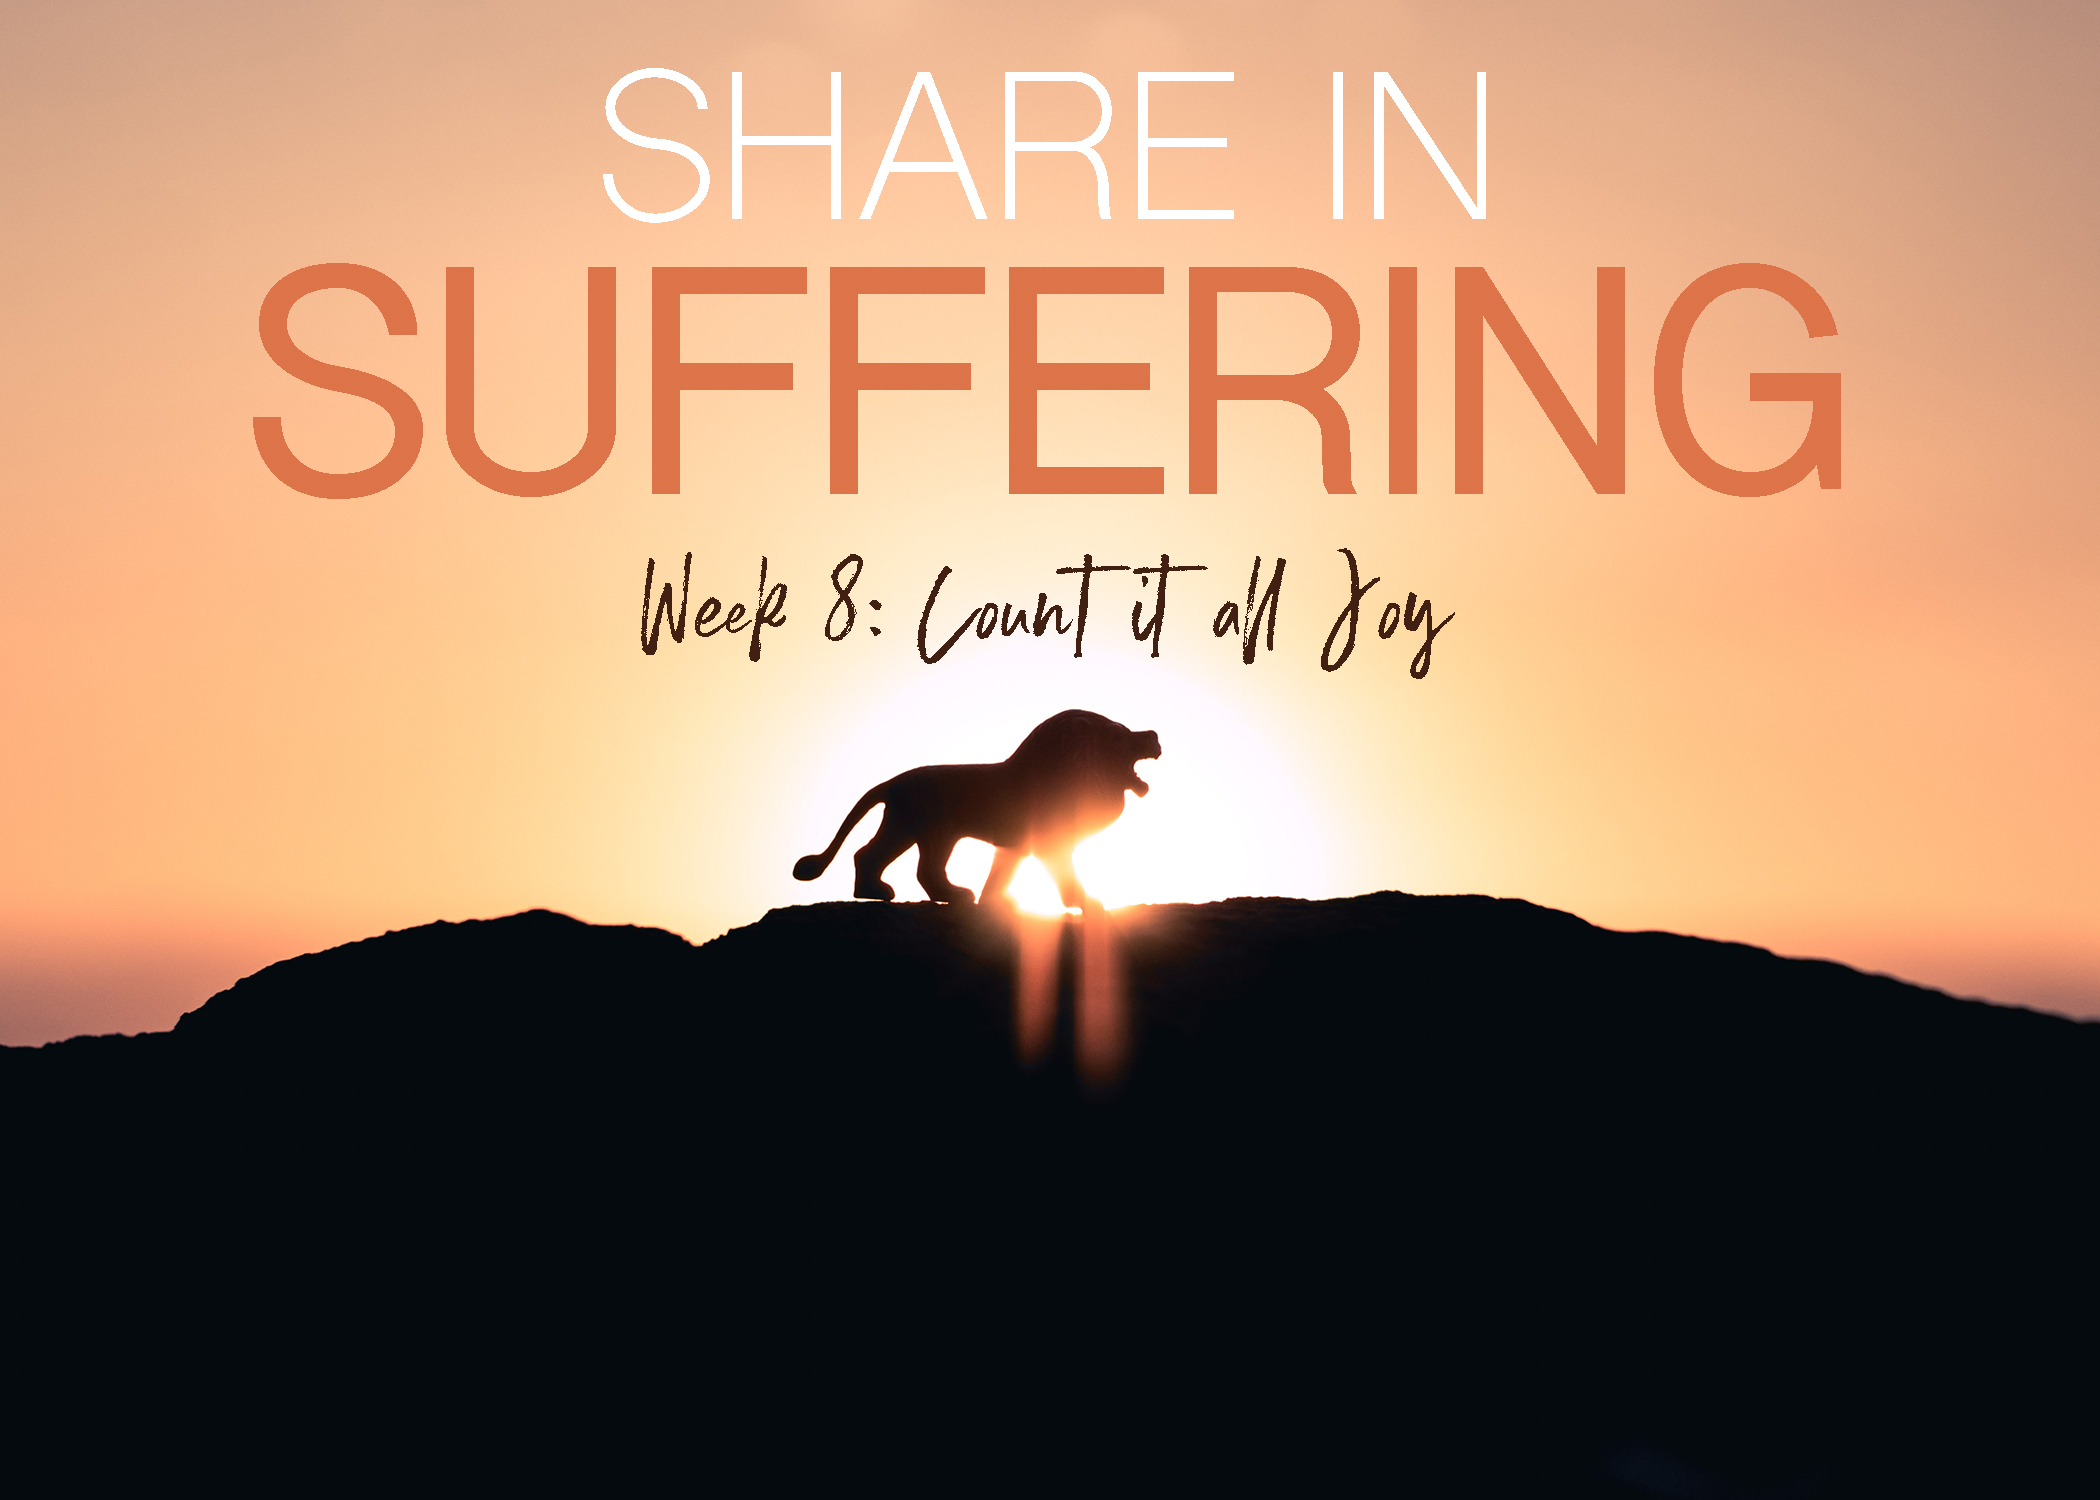 Share in Suffering Week 8.jpg